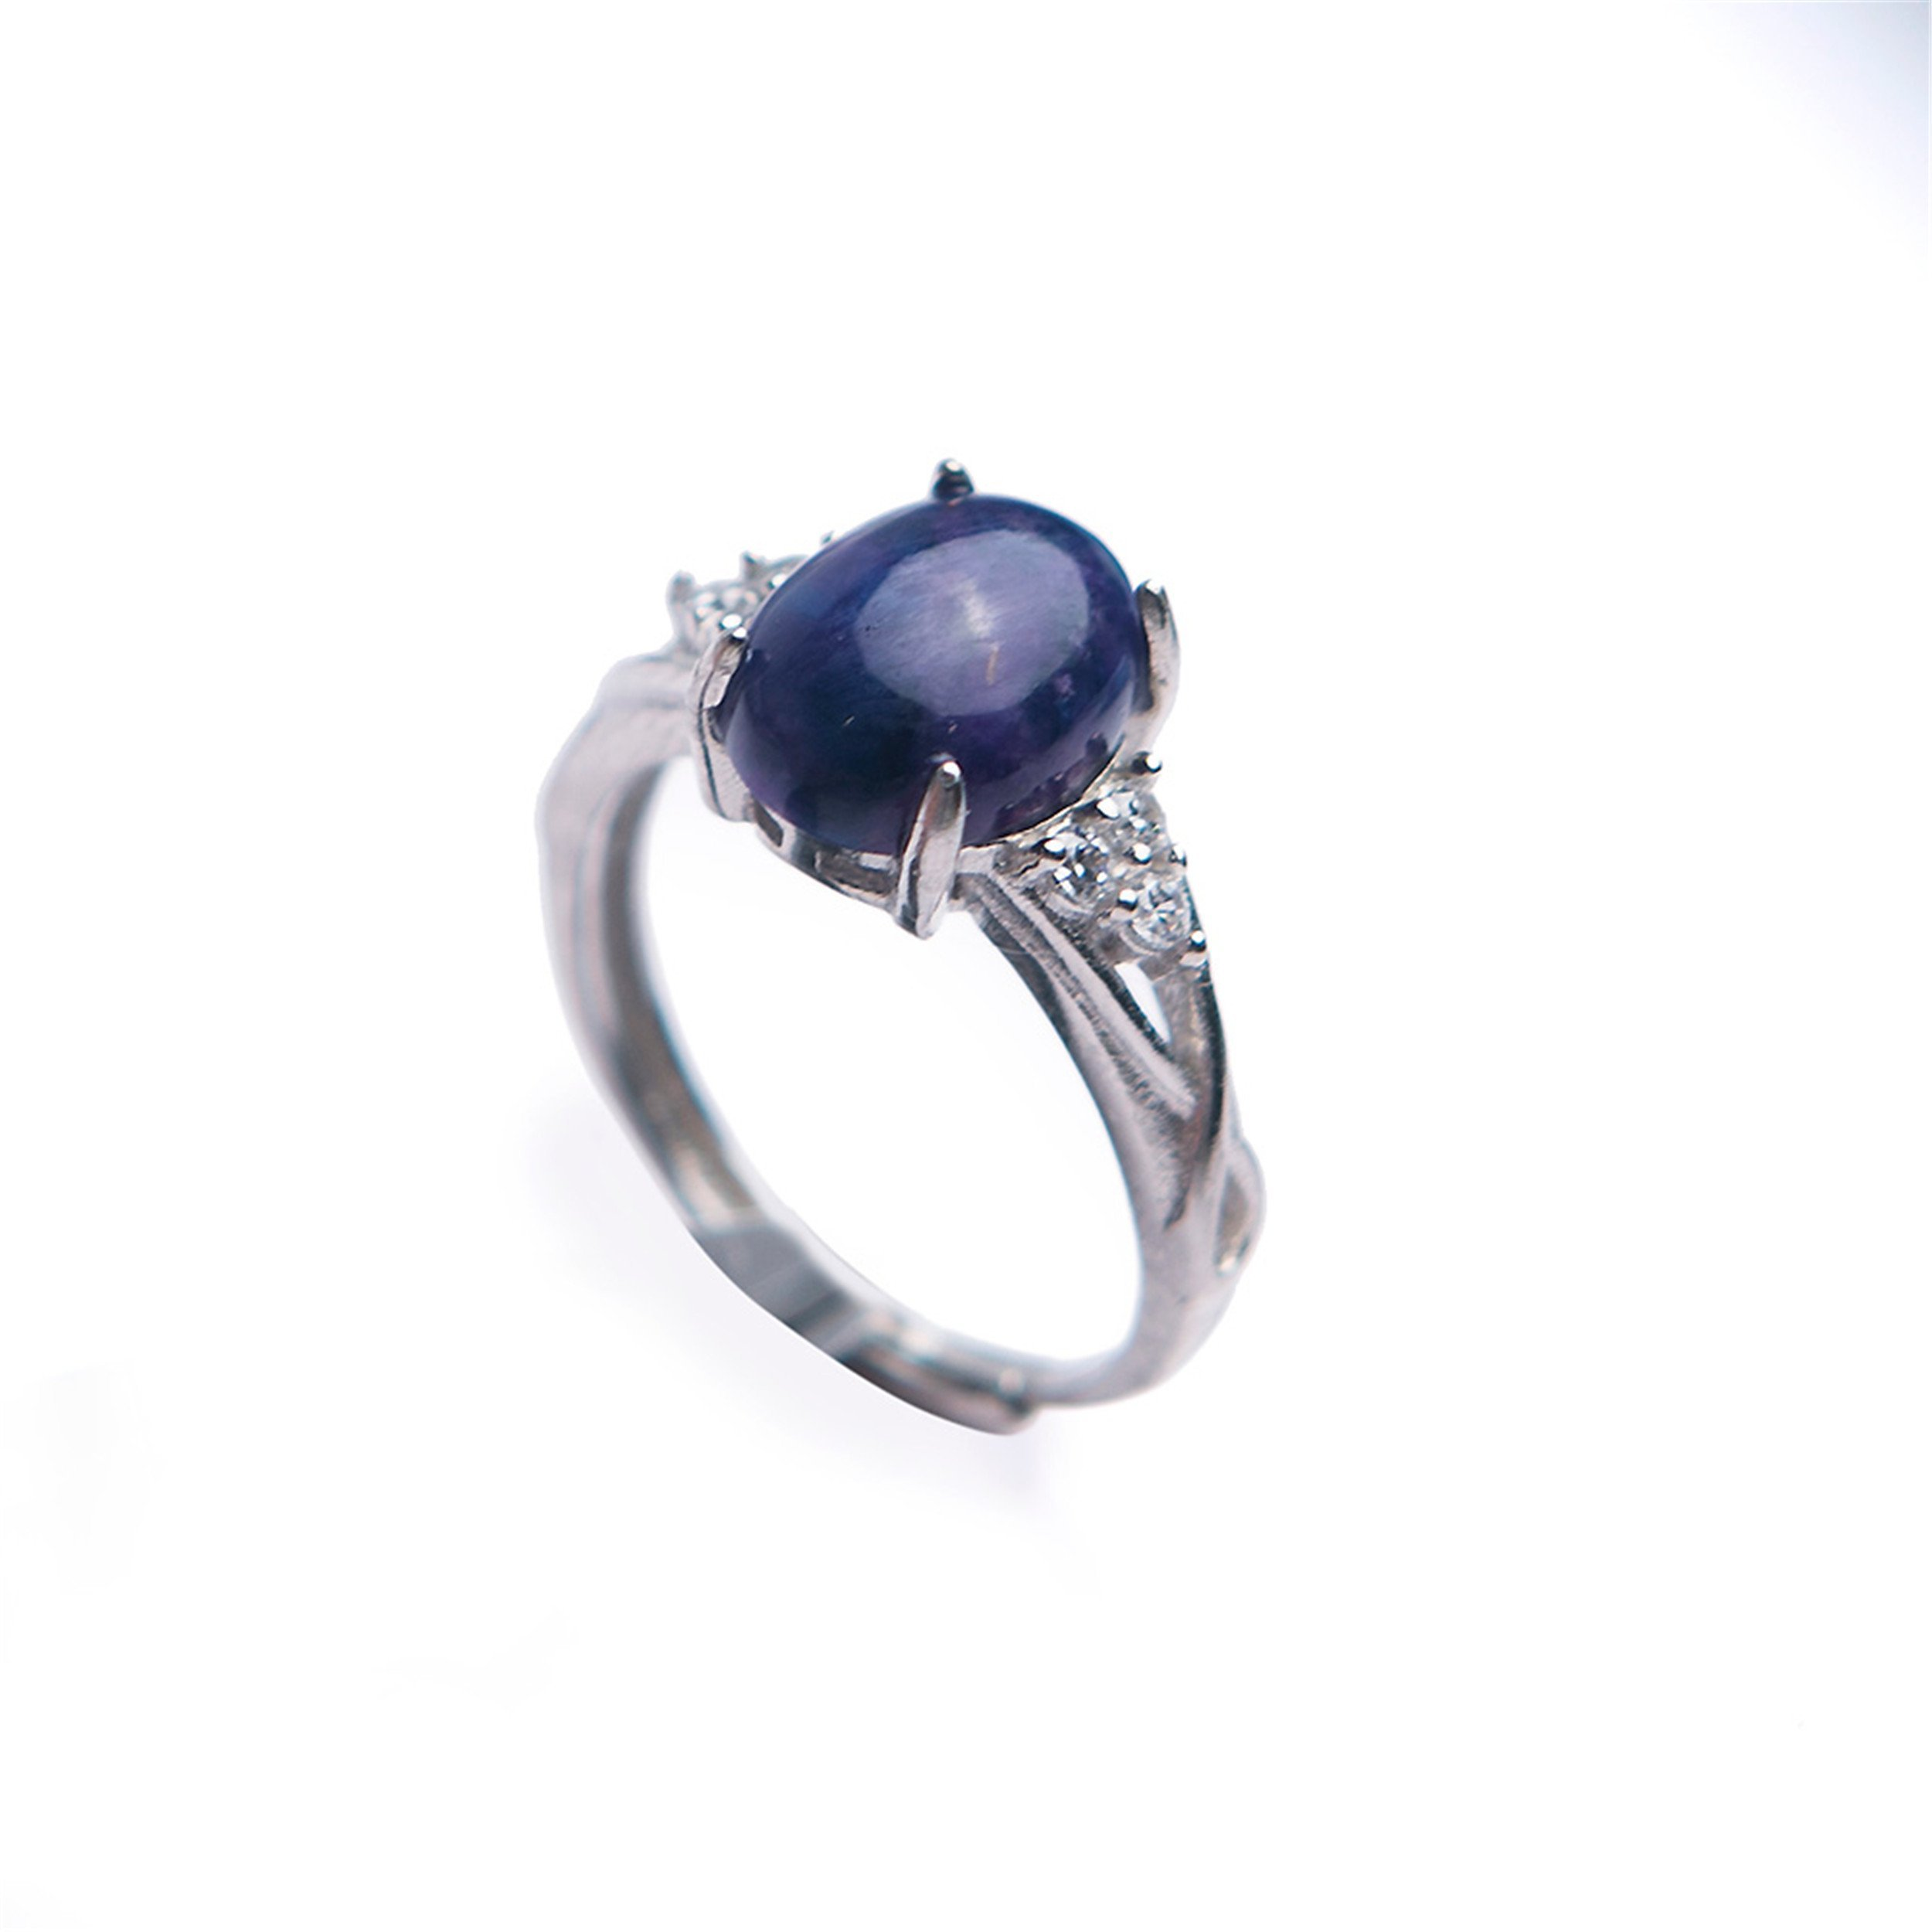 LiZiFang Genuine Natural Purple Sugilite Gemstone Crystal Wedding Party Ring Adjustable Size